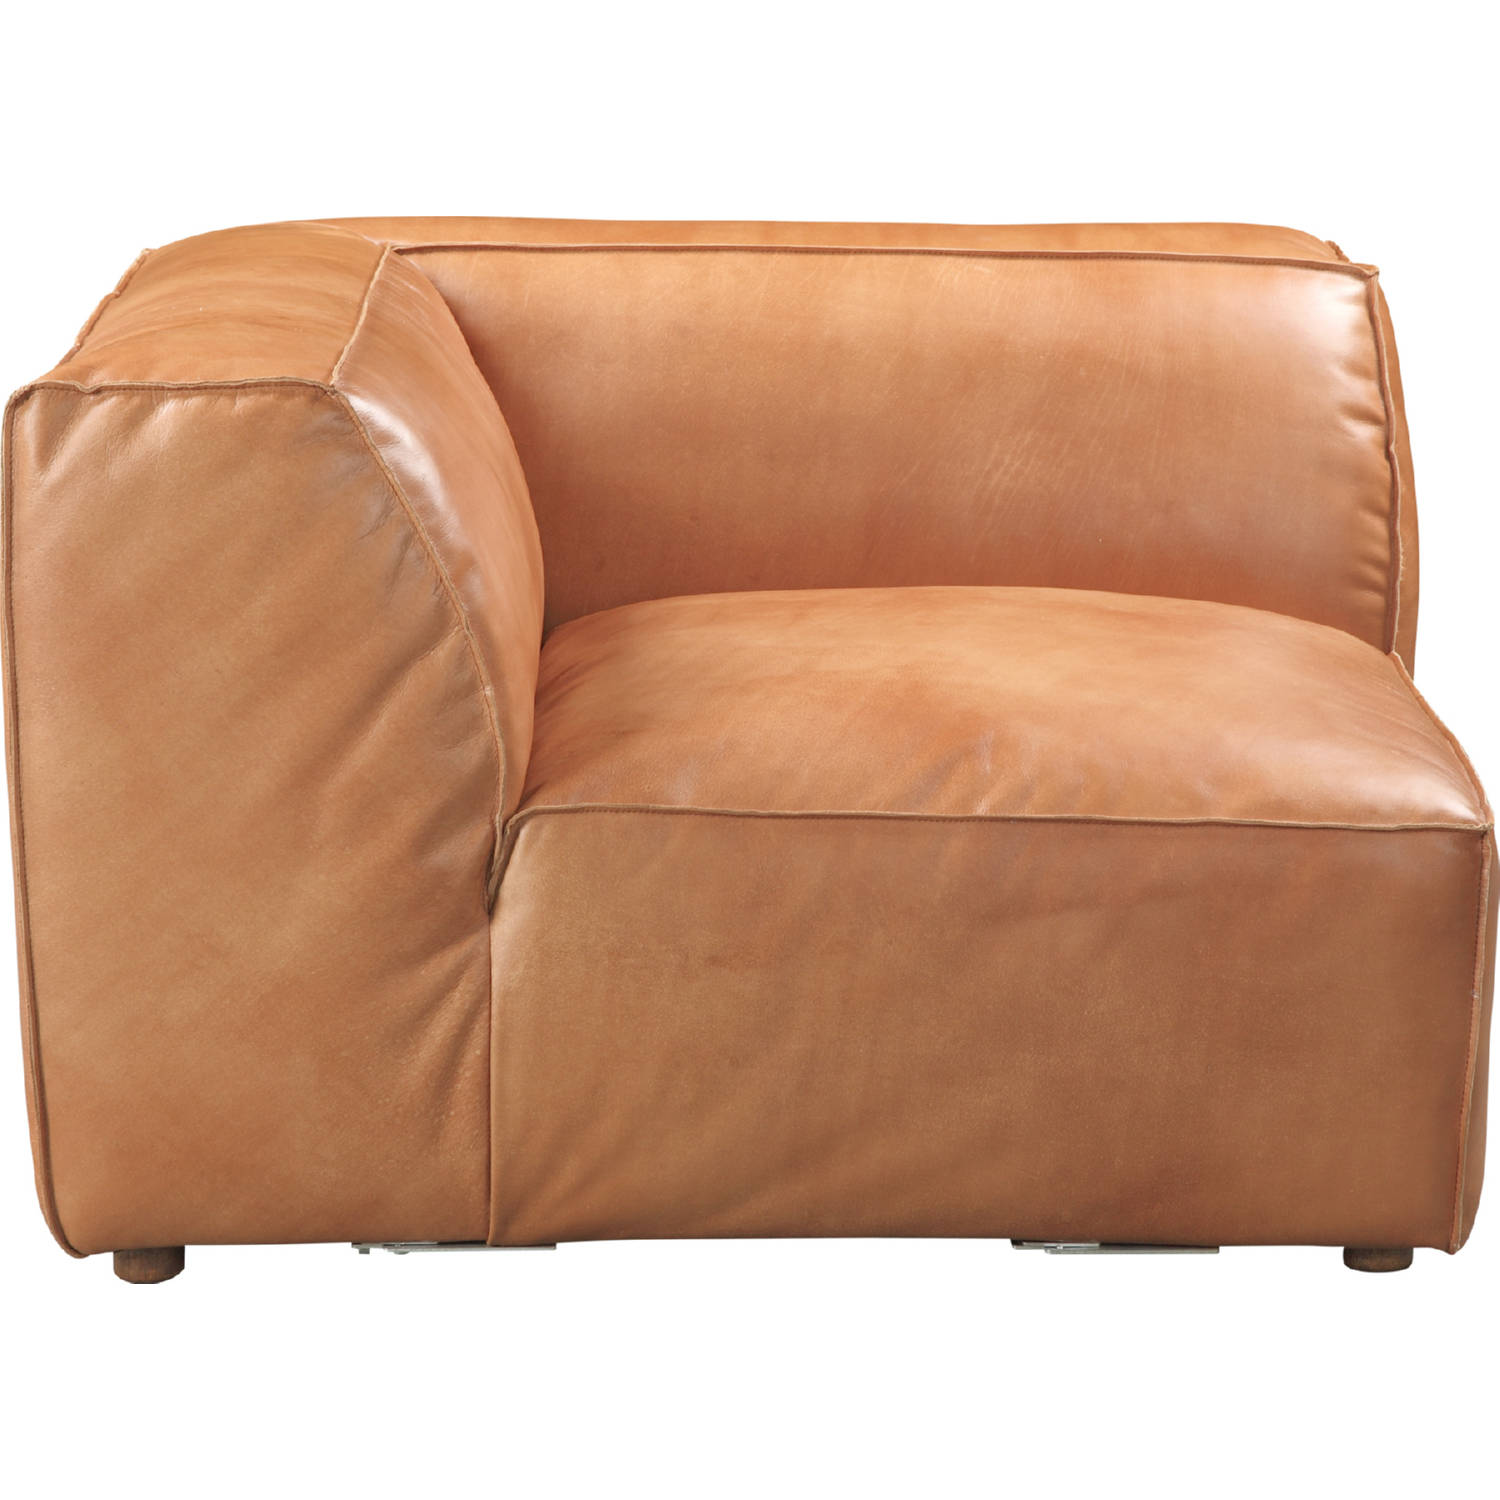 Brilliant Luxe Corner Chair Sectional Sofa Unit In Tan Top Grain Leather By Moes Home Collection Gmtry Best Dining Table And Chair Ideas Images Gmtryco